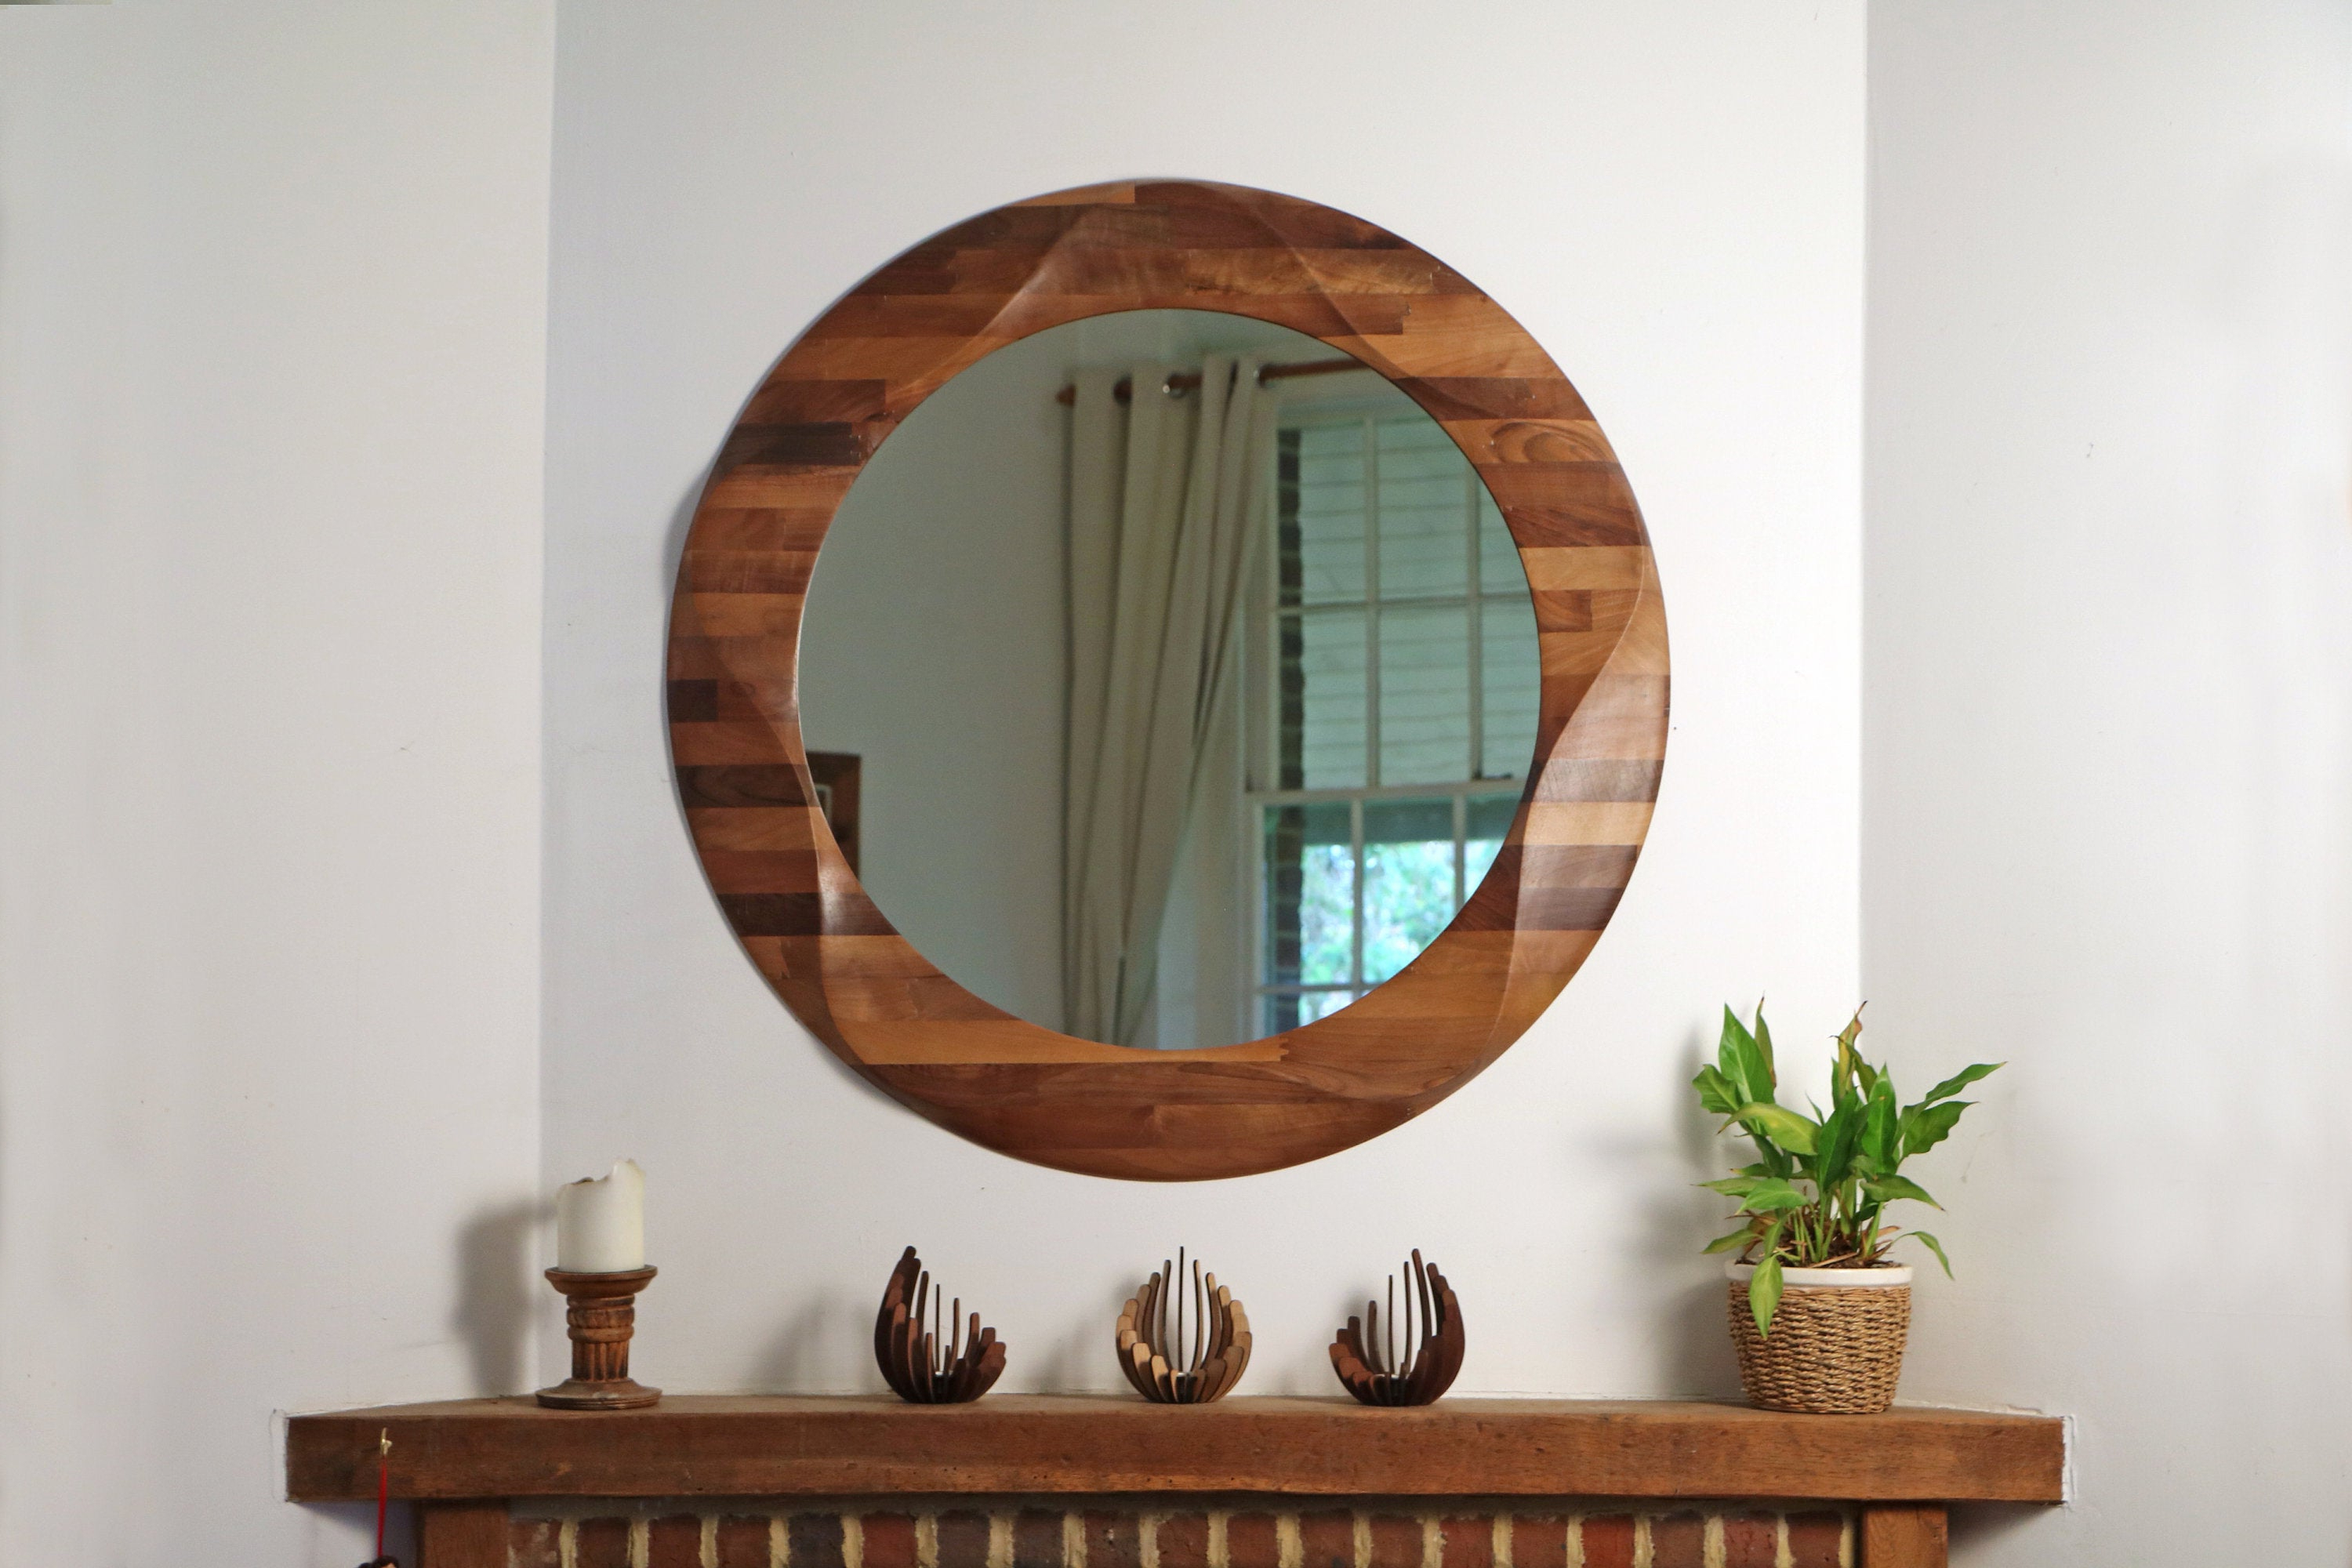 Fashionable Large Wooden Wall Mirrors For Round Mirror, Large Decorative Round Wooden Wall Mirror, Wooden Mirror Wall, Circular Wall Hanging Mirror Made From Solid Walnut Wood (View 7 of 20)